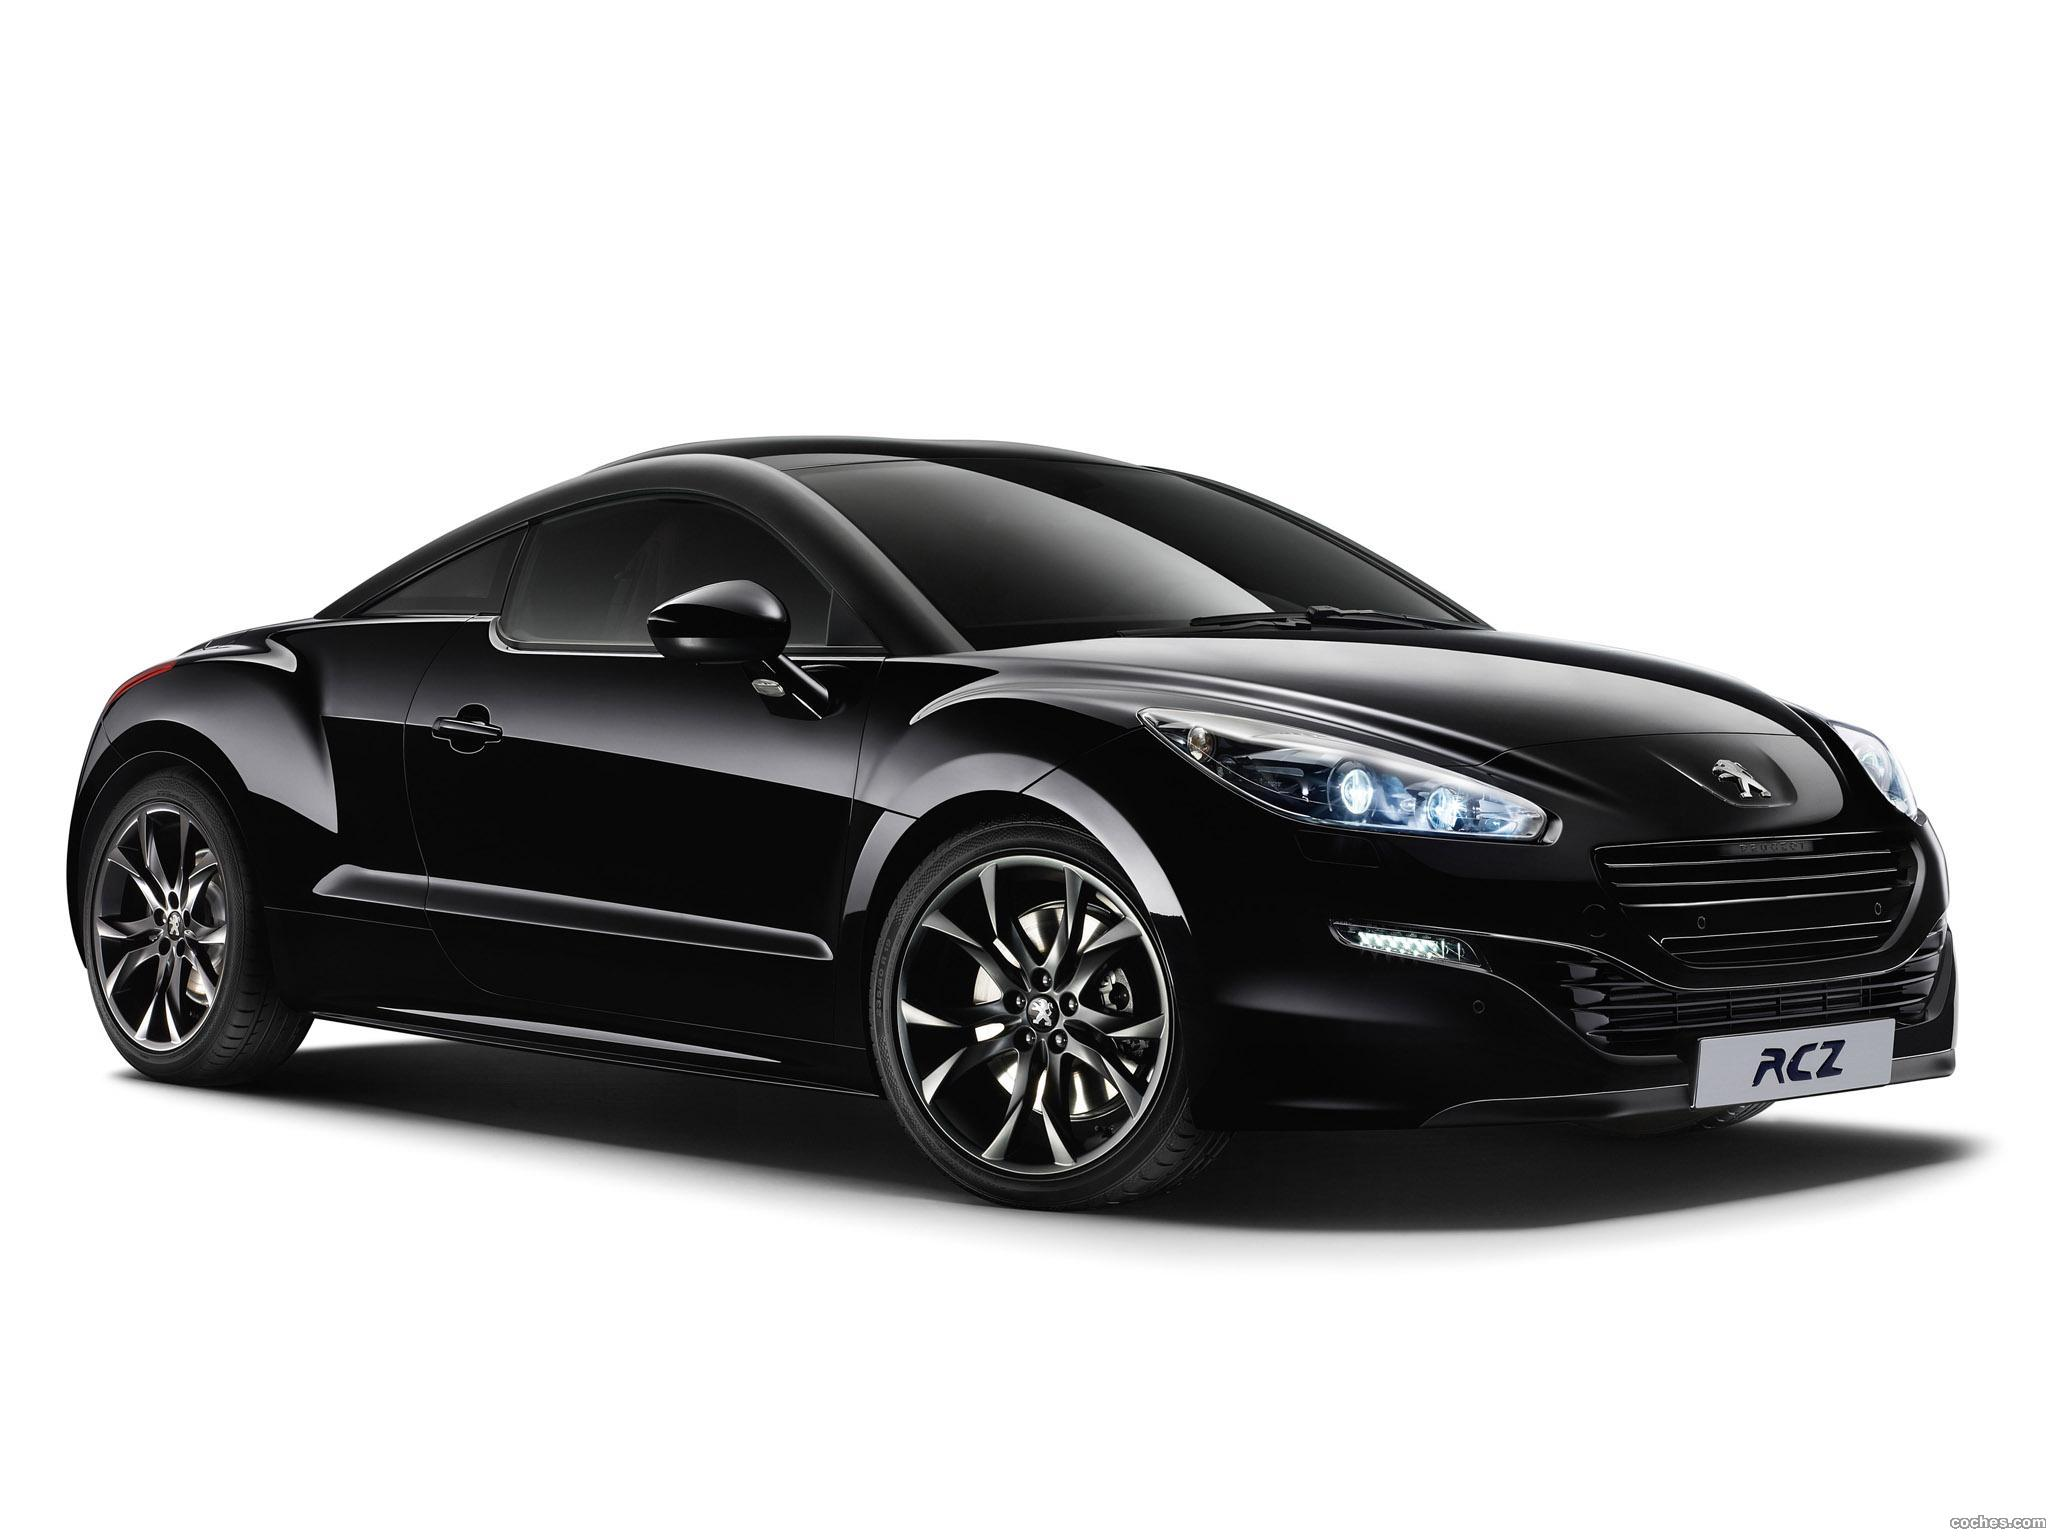 fotos de peugeot rcz magnetic 2013. Black Bedroom Furniture Sets. Home Design Ideas